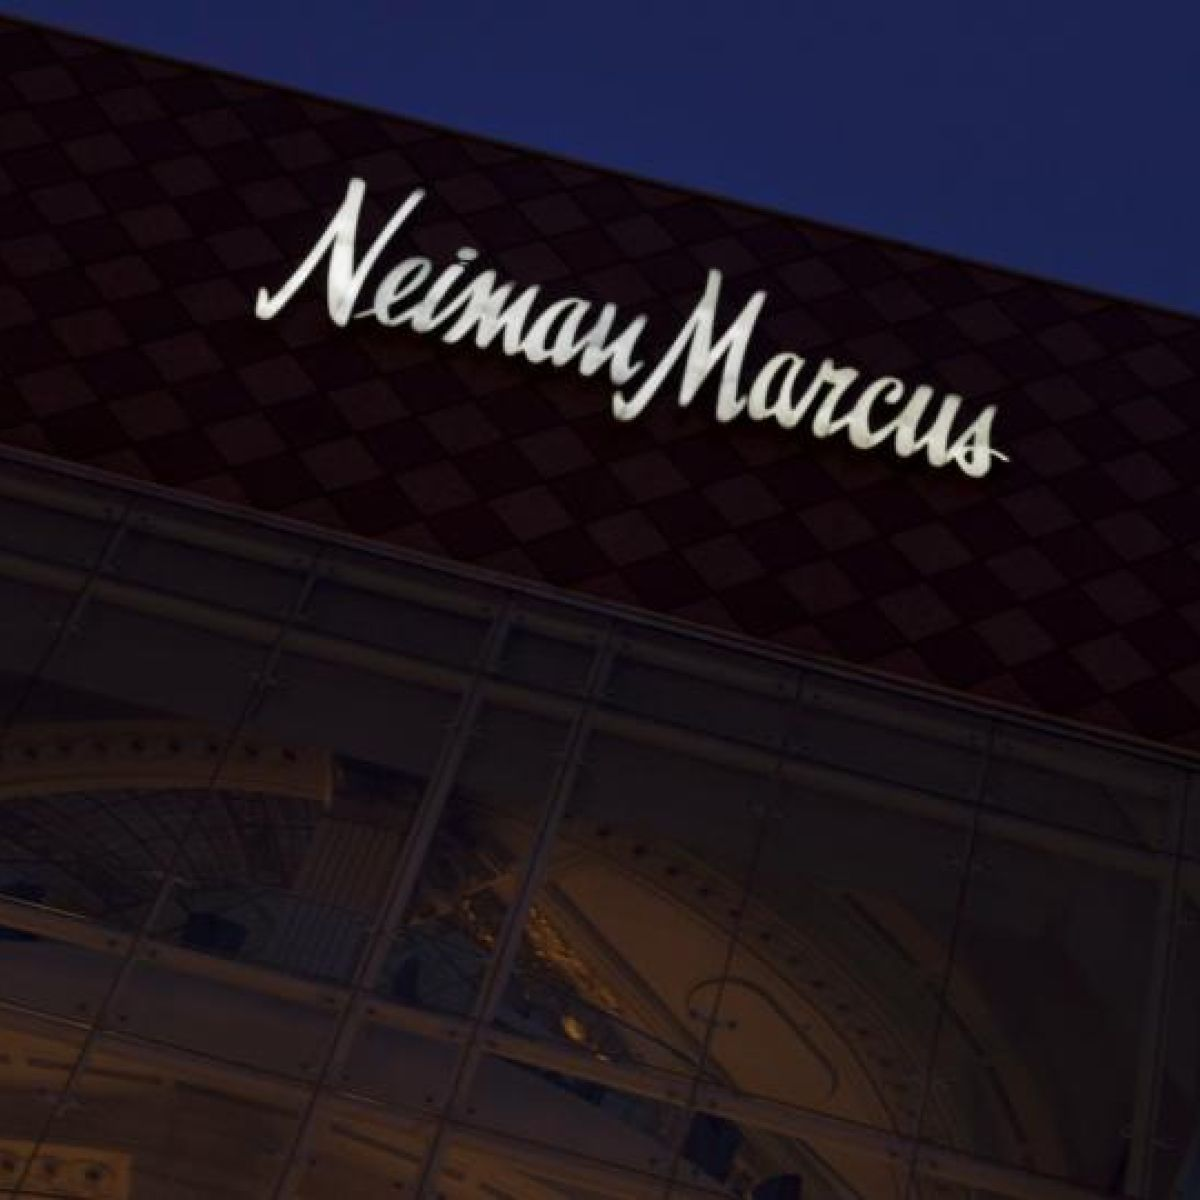 Get the Real Deal' at the Neiman Marcus Sale recommend